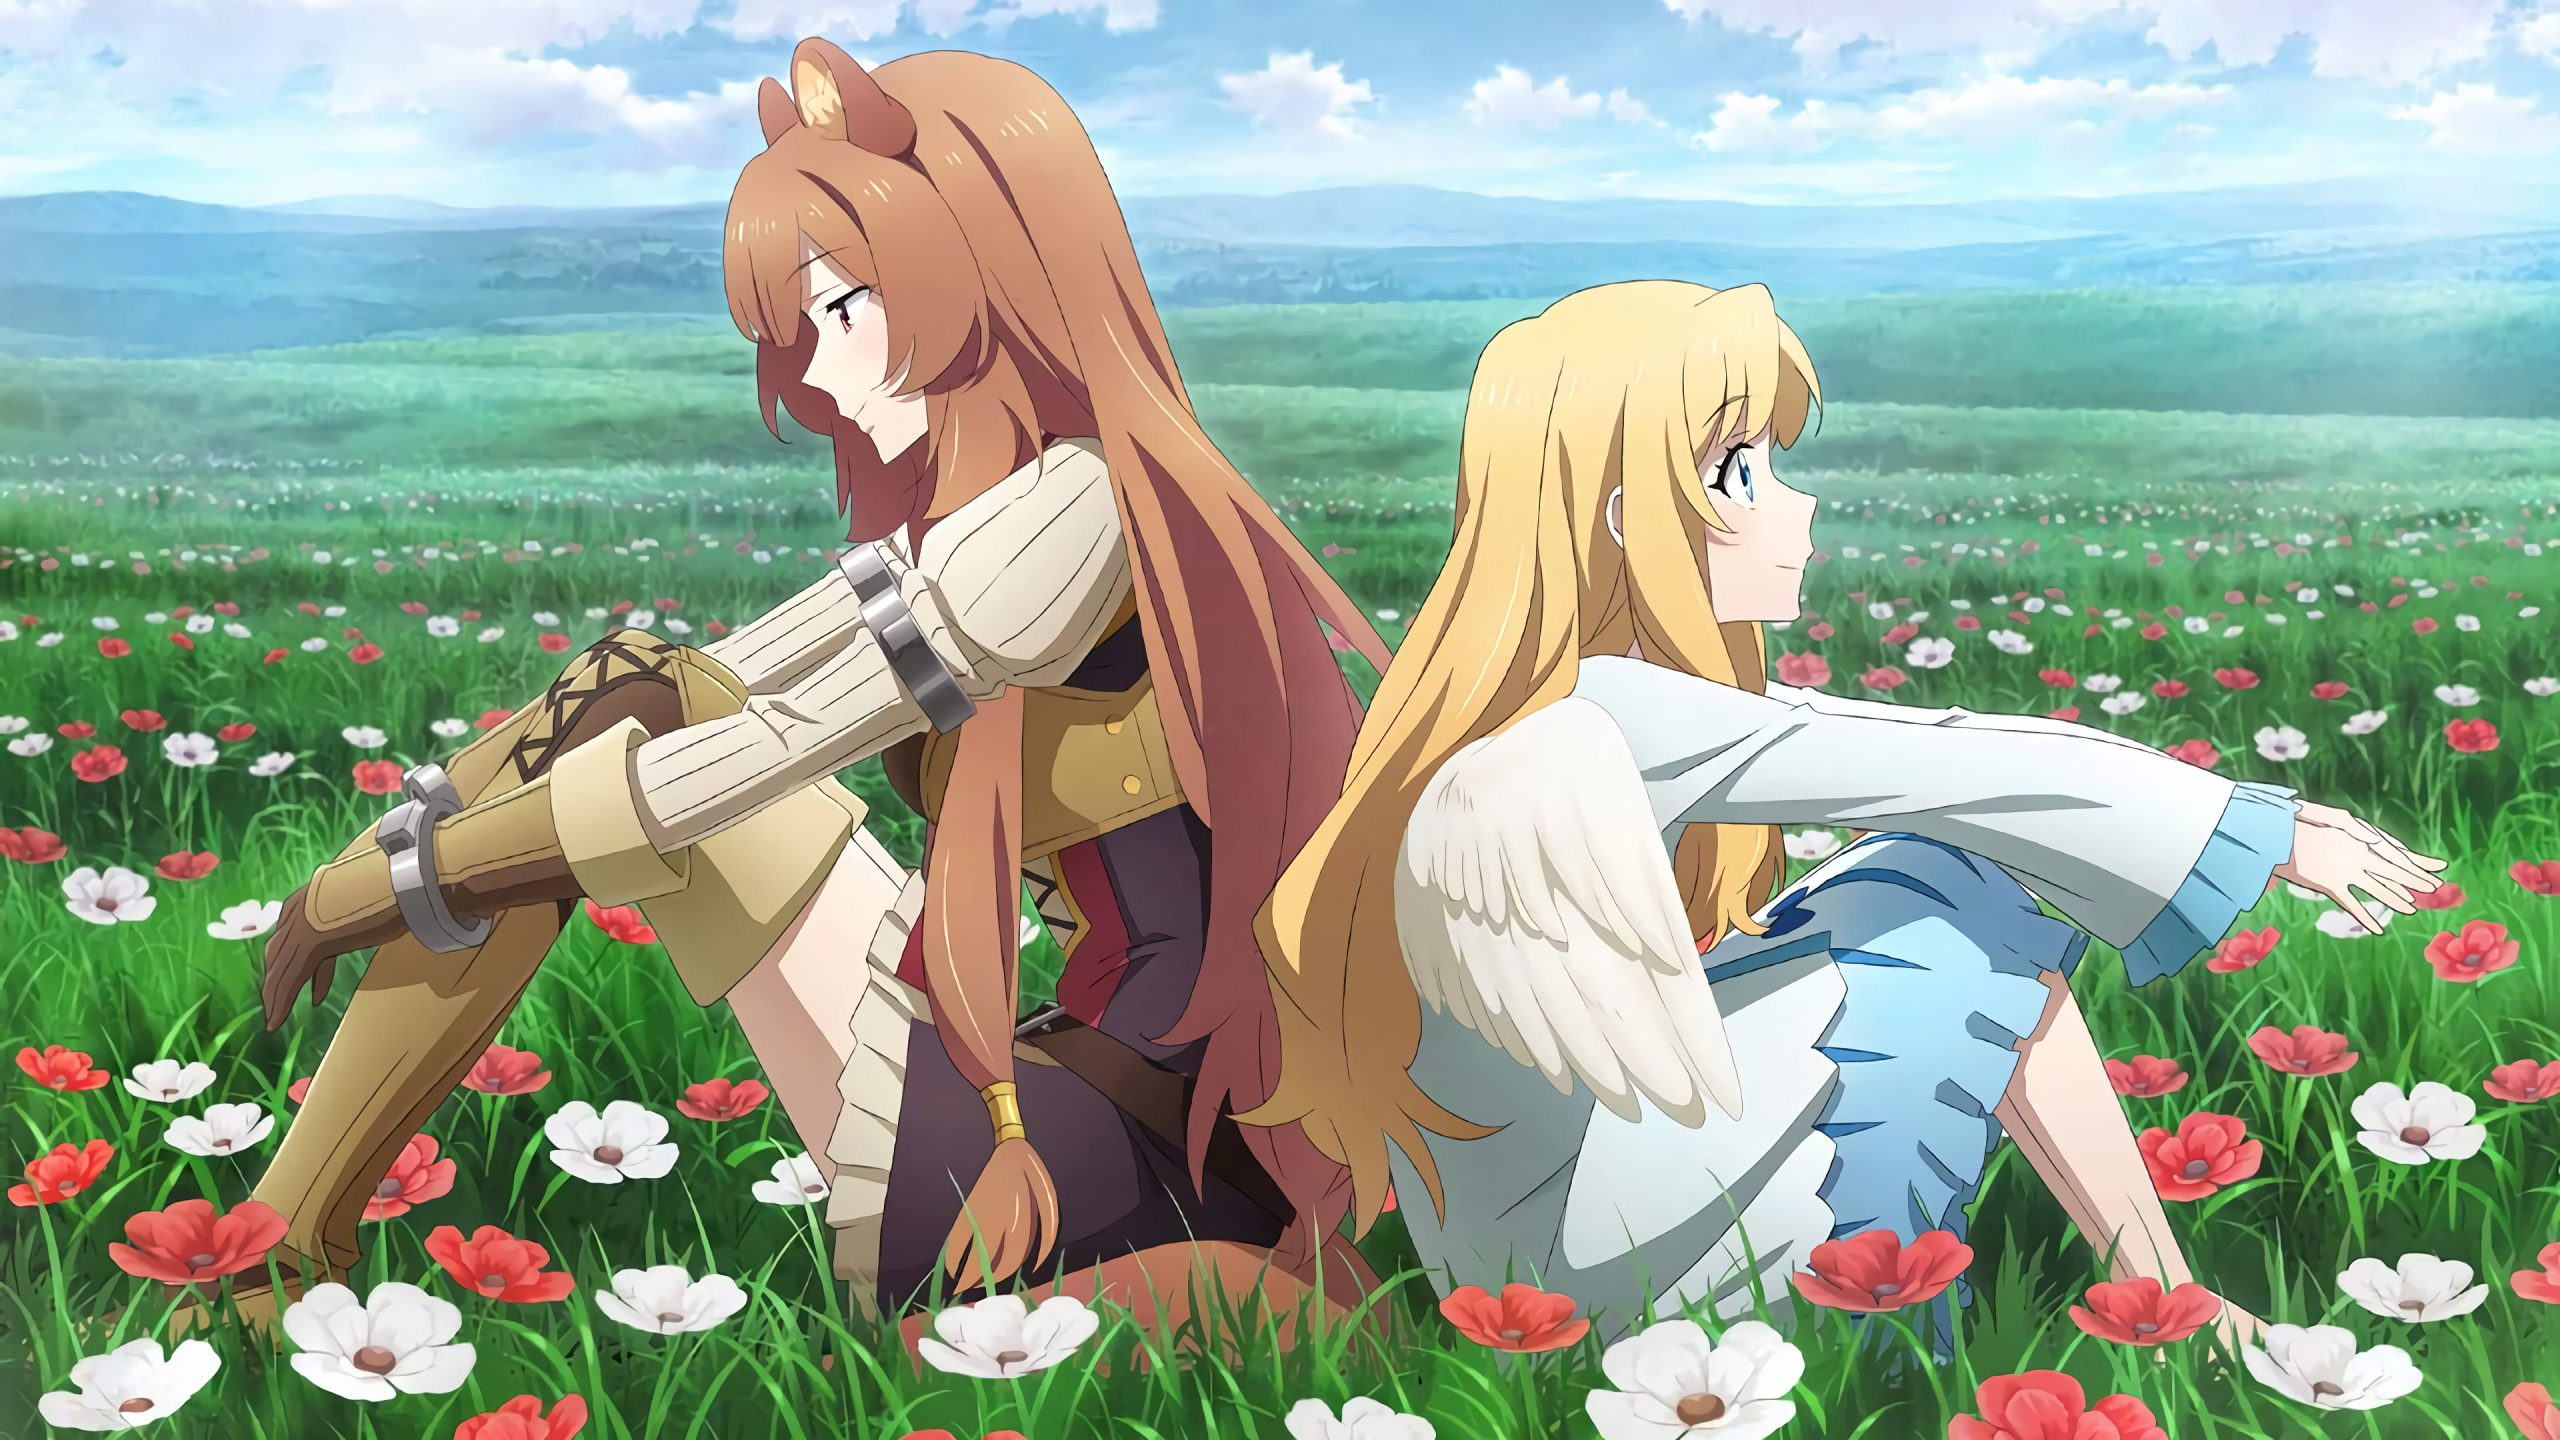 Bande Annonce de The Rising of the Shield Hero saison 2